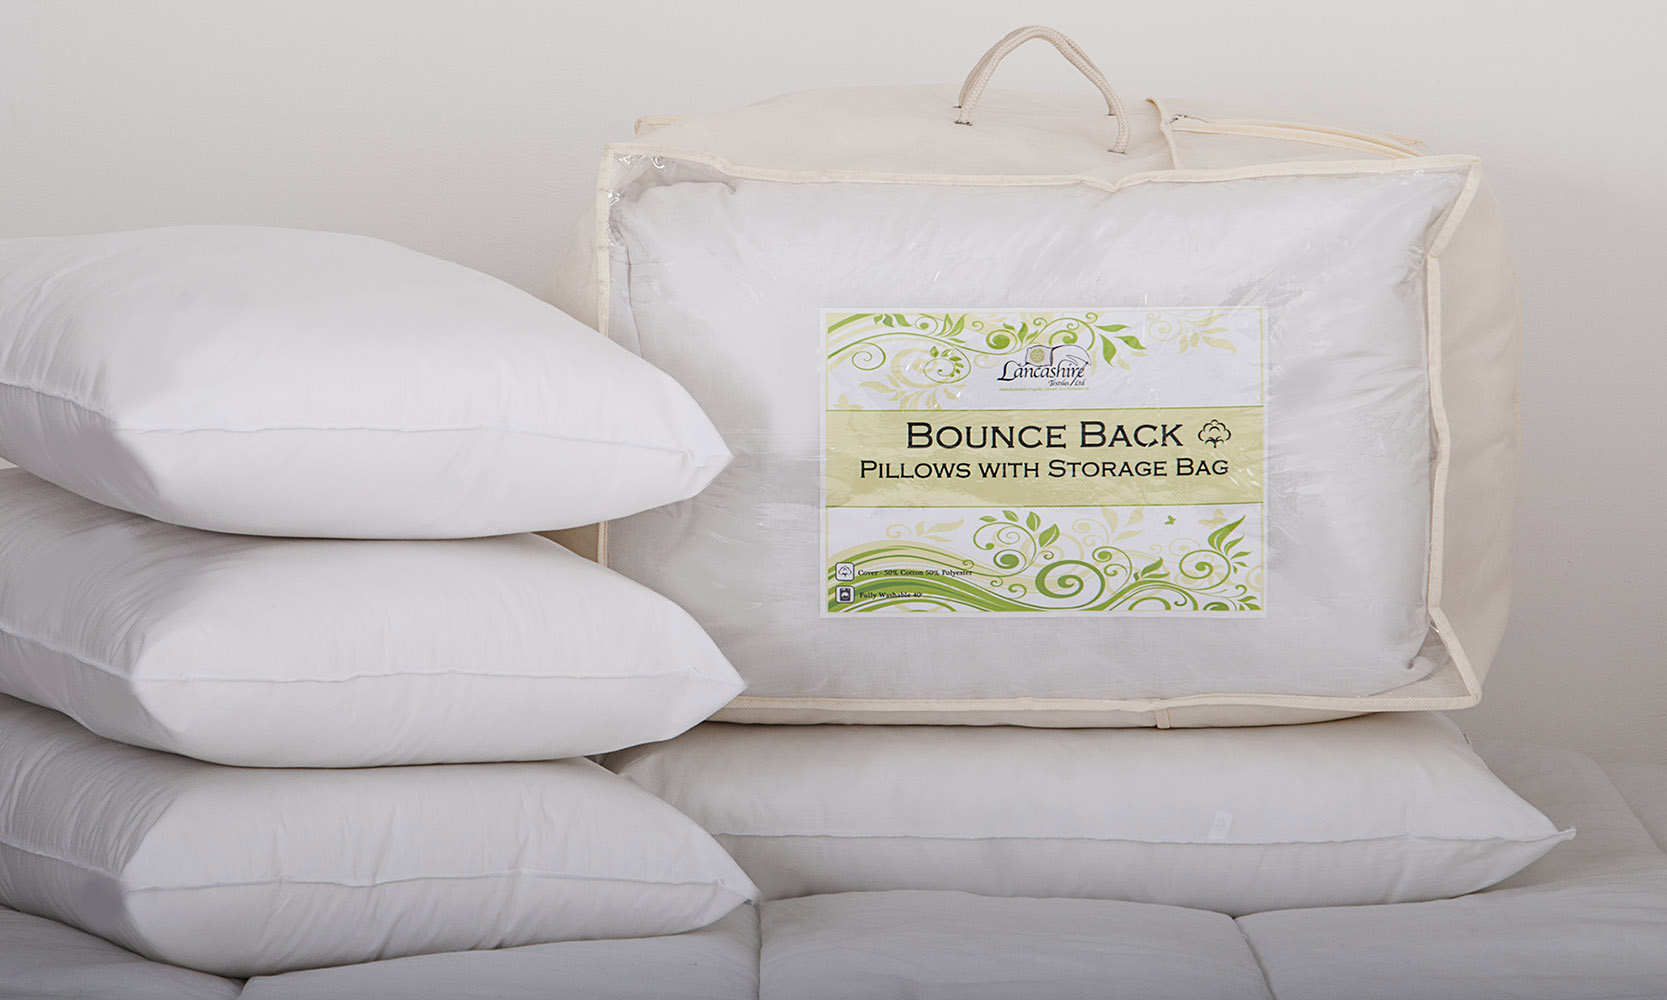 Bounce Back Pillows with Storage Bag